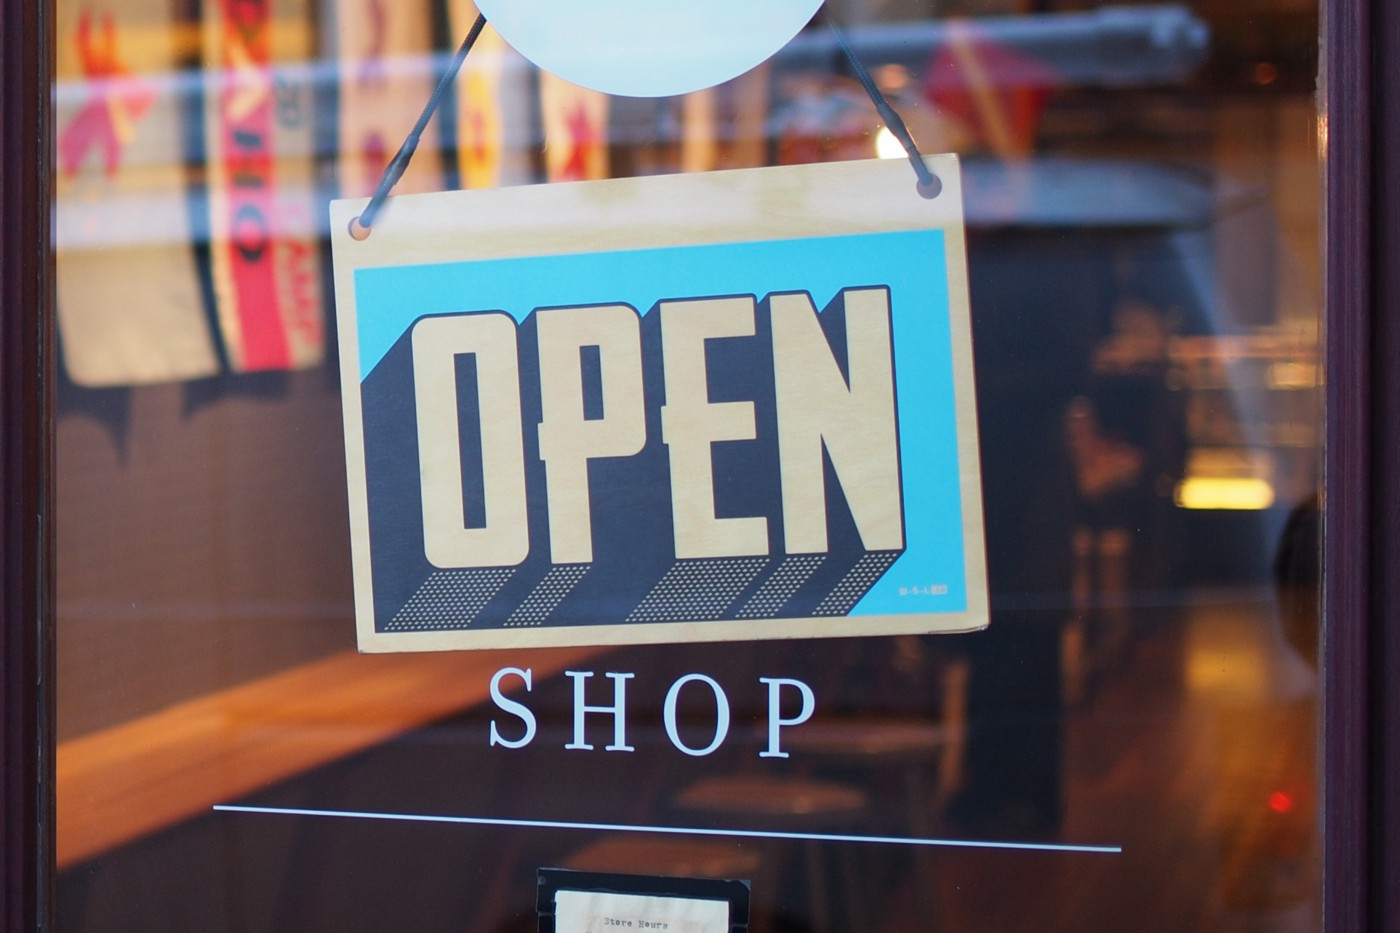 A blue and white OPEN sign hanging on the inside of a glass door above the word SHOP.